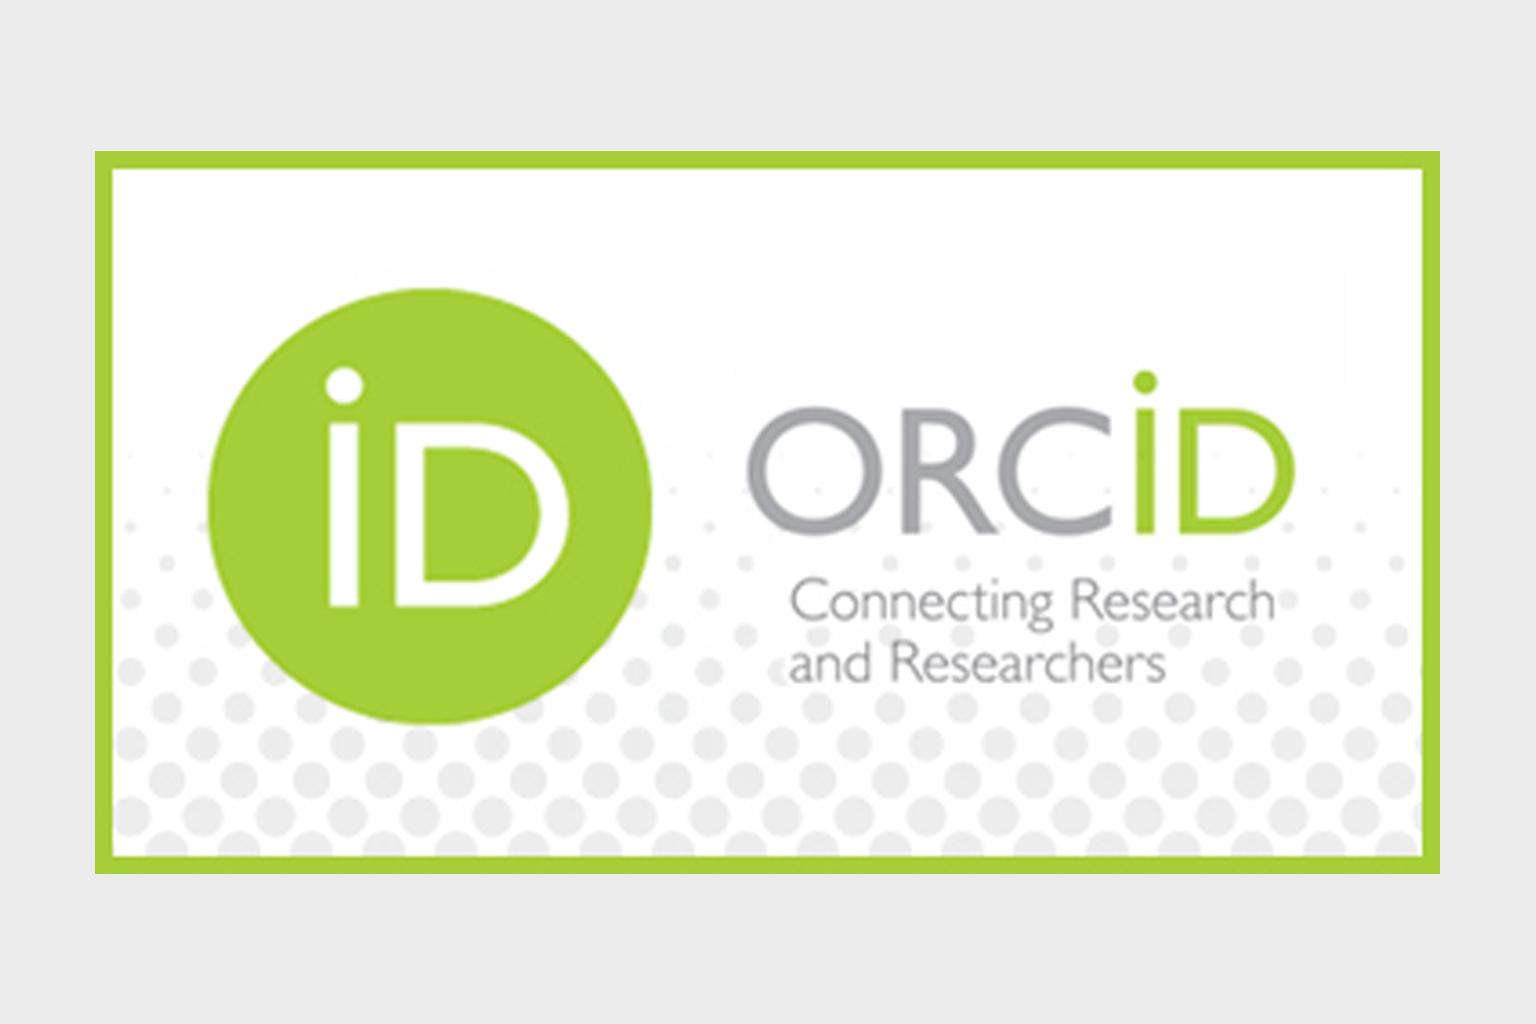 Orcid ID, connecting research and researchers logo ad